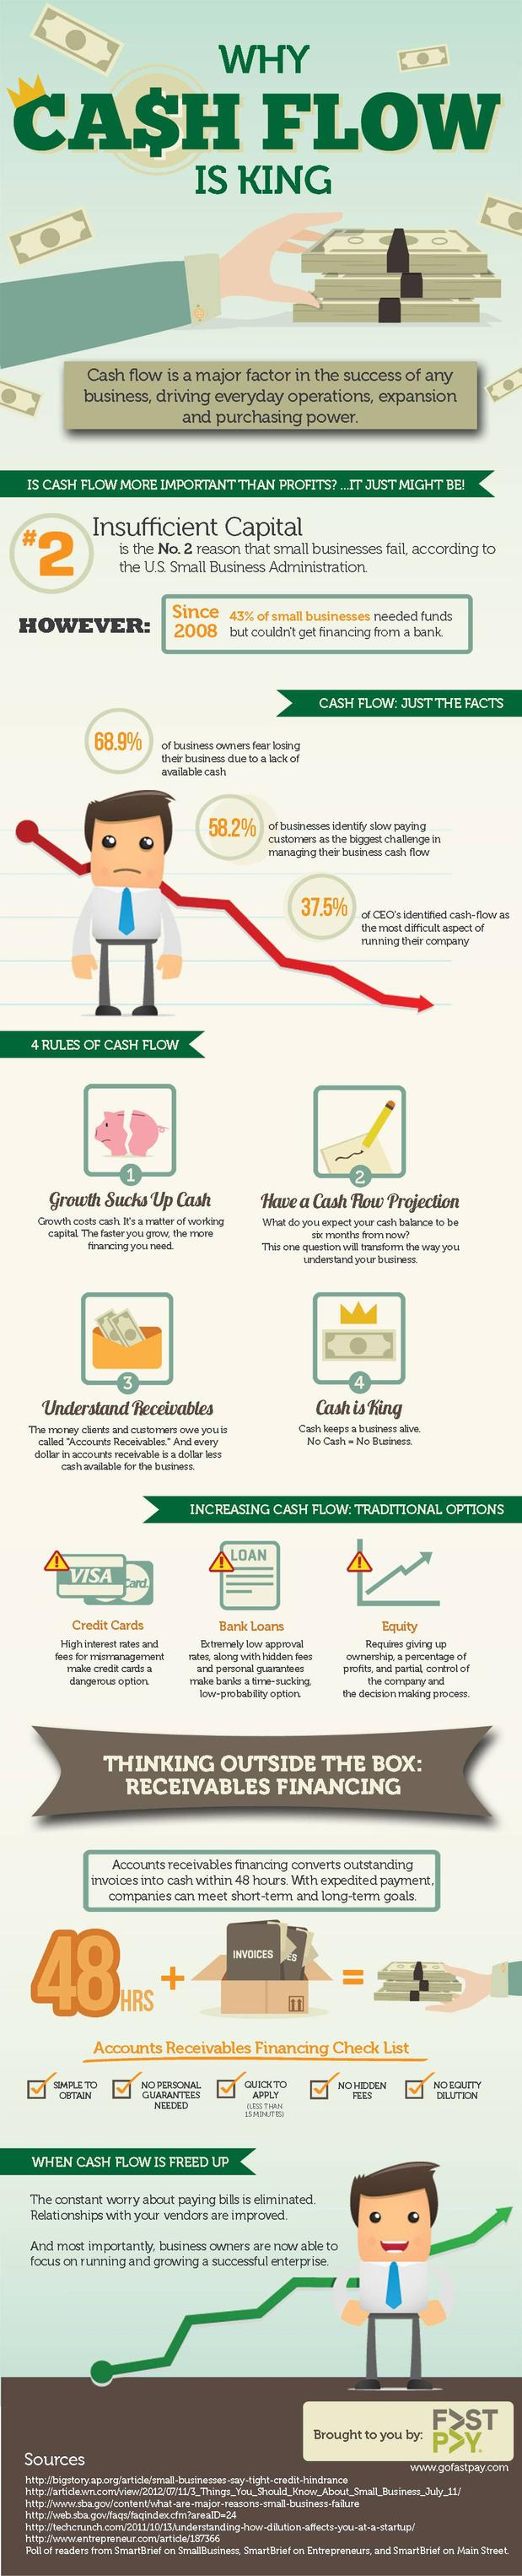 why cash flow management is king